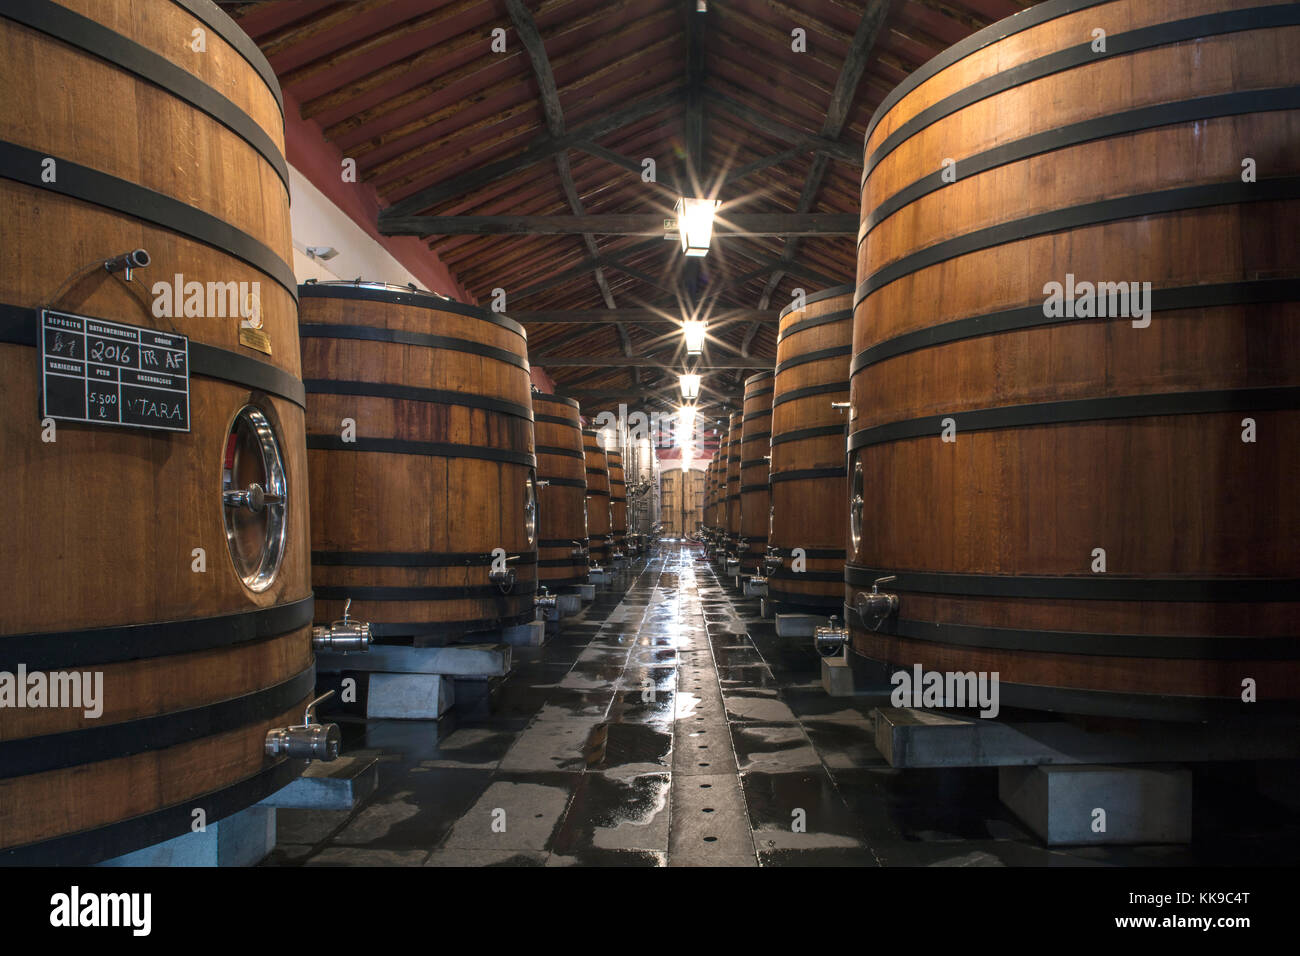 Wine barrels storing award-winning Portuguese wine in the cellars of the Reynolds vineyard and winery near Arronches, - Stock Image